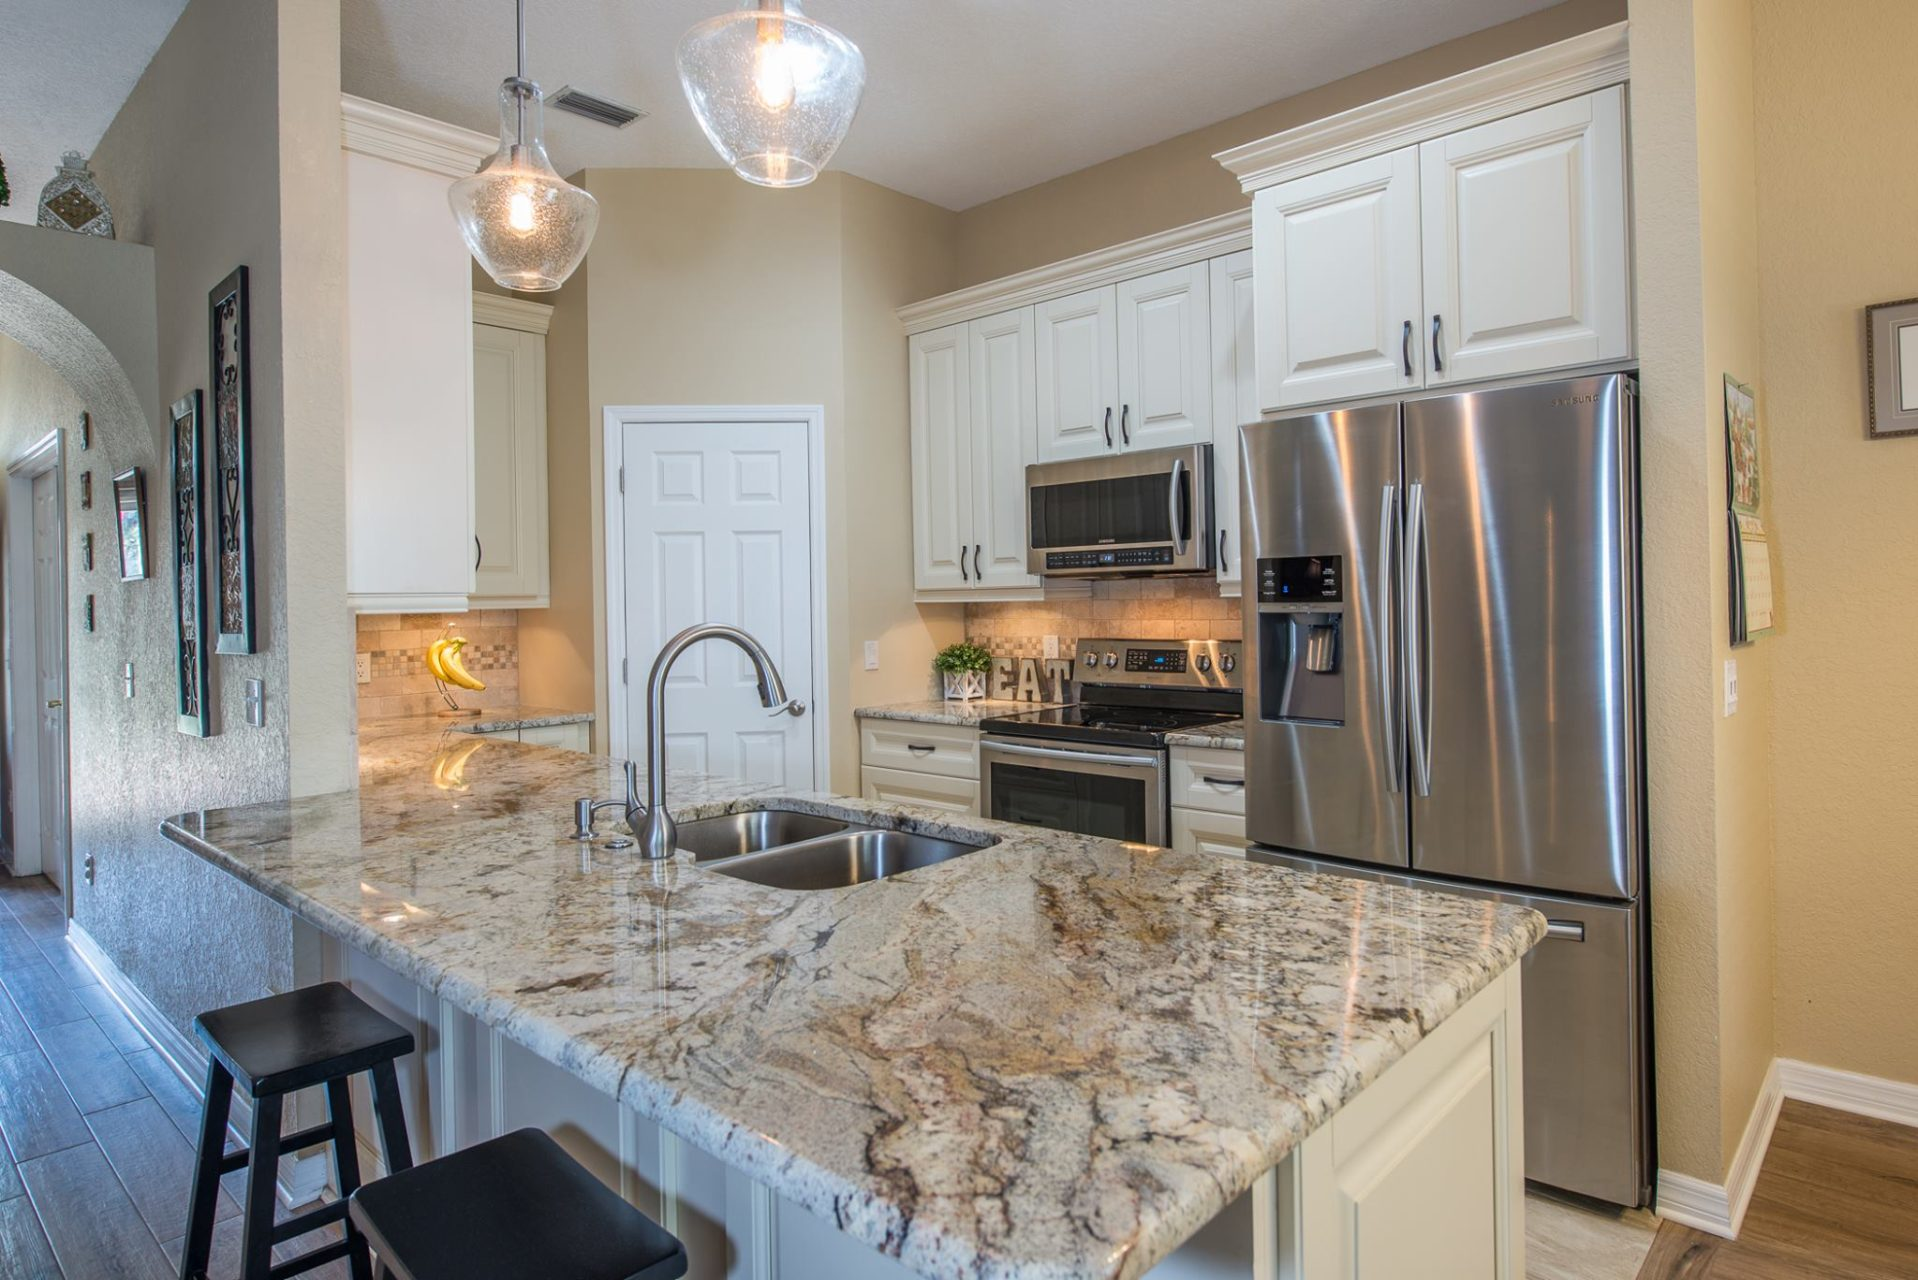 Kitchen Remodeling san antonio stone oak bulverde dominion alamo heights Kitchen cabinets countertops tile flooring